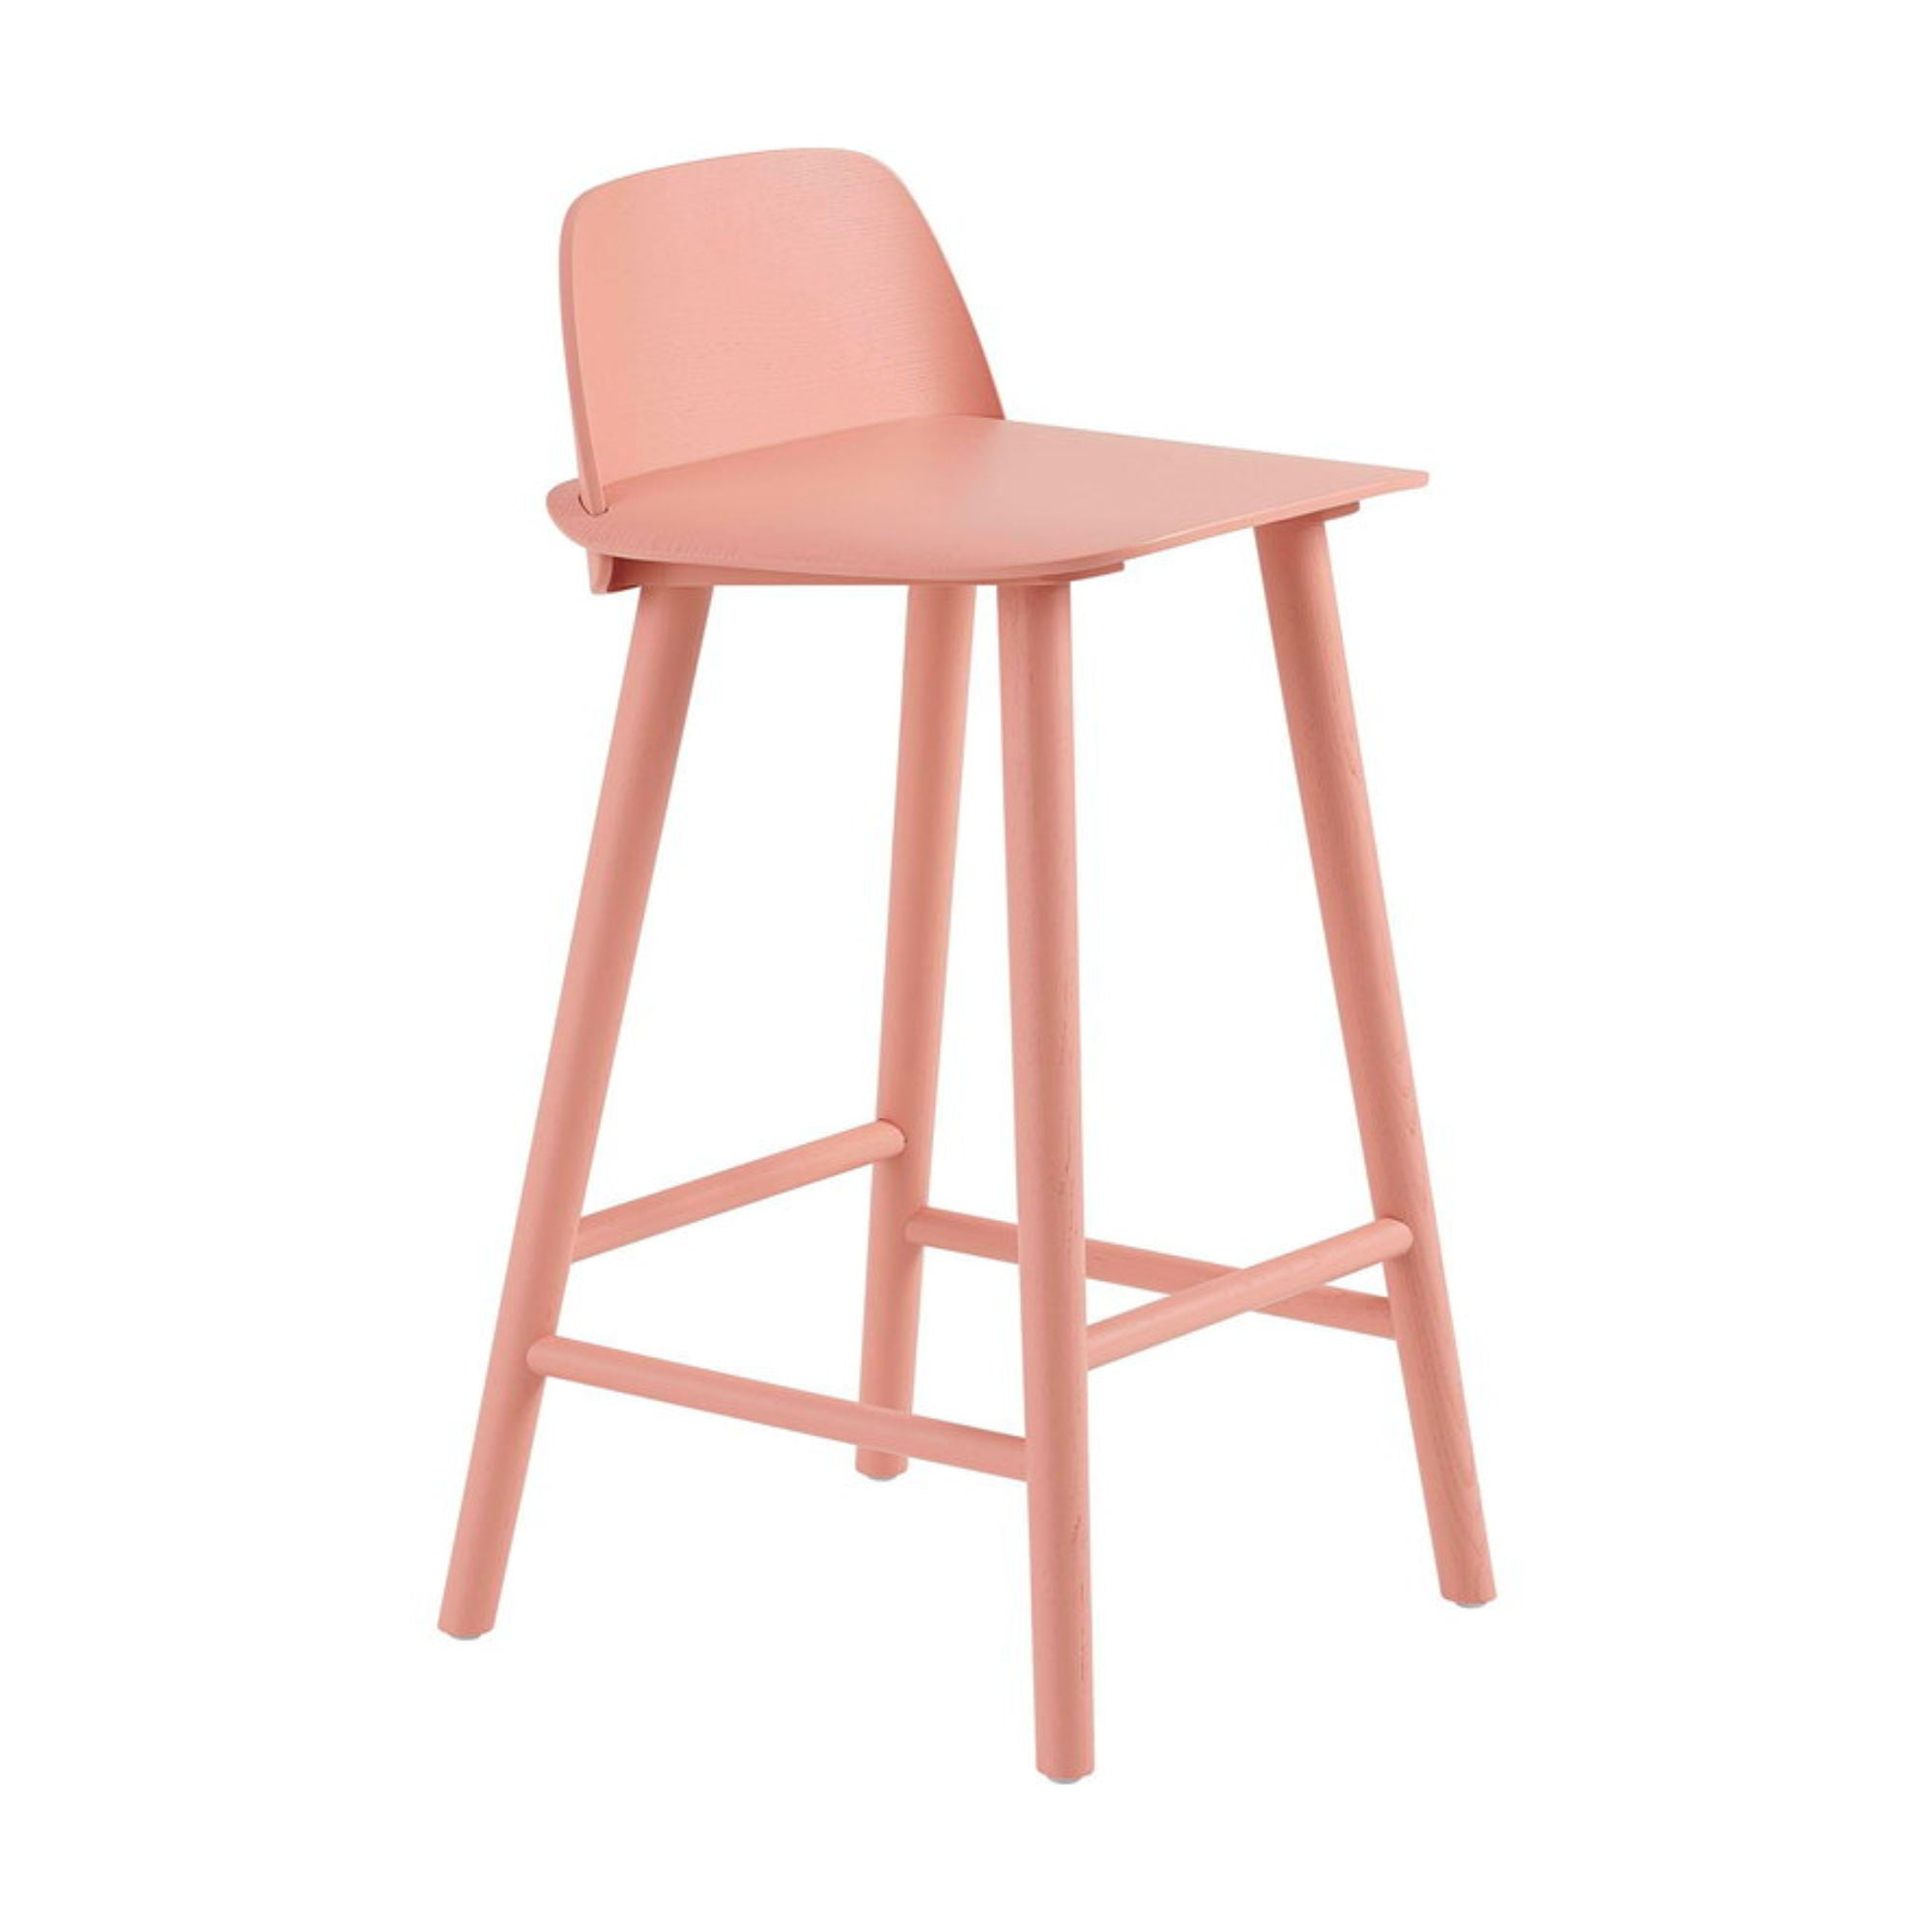 Muuto Nerd Counter Stool , Tan Rose (65 cm)